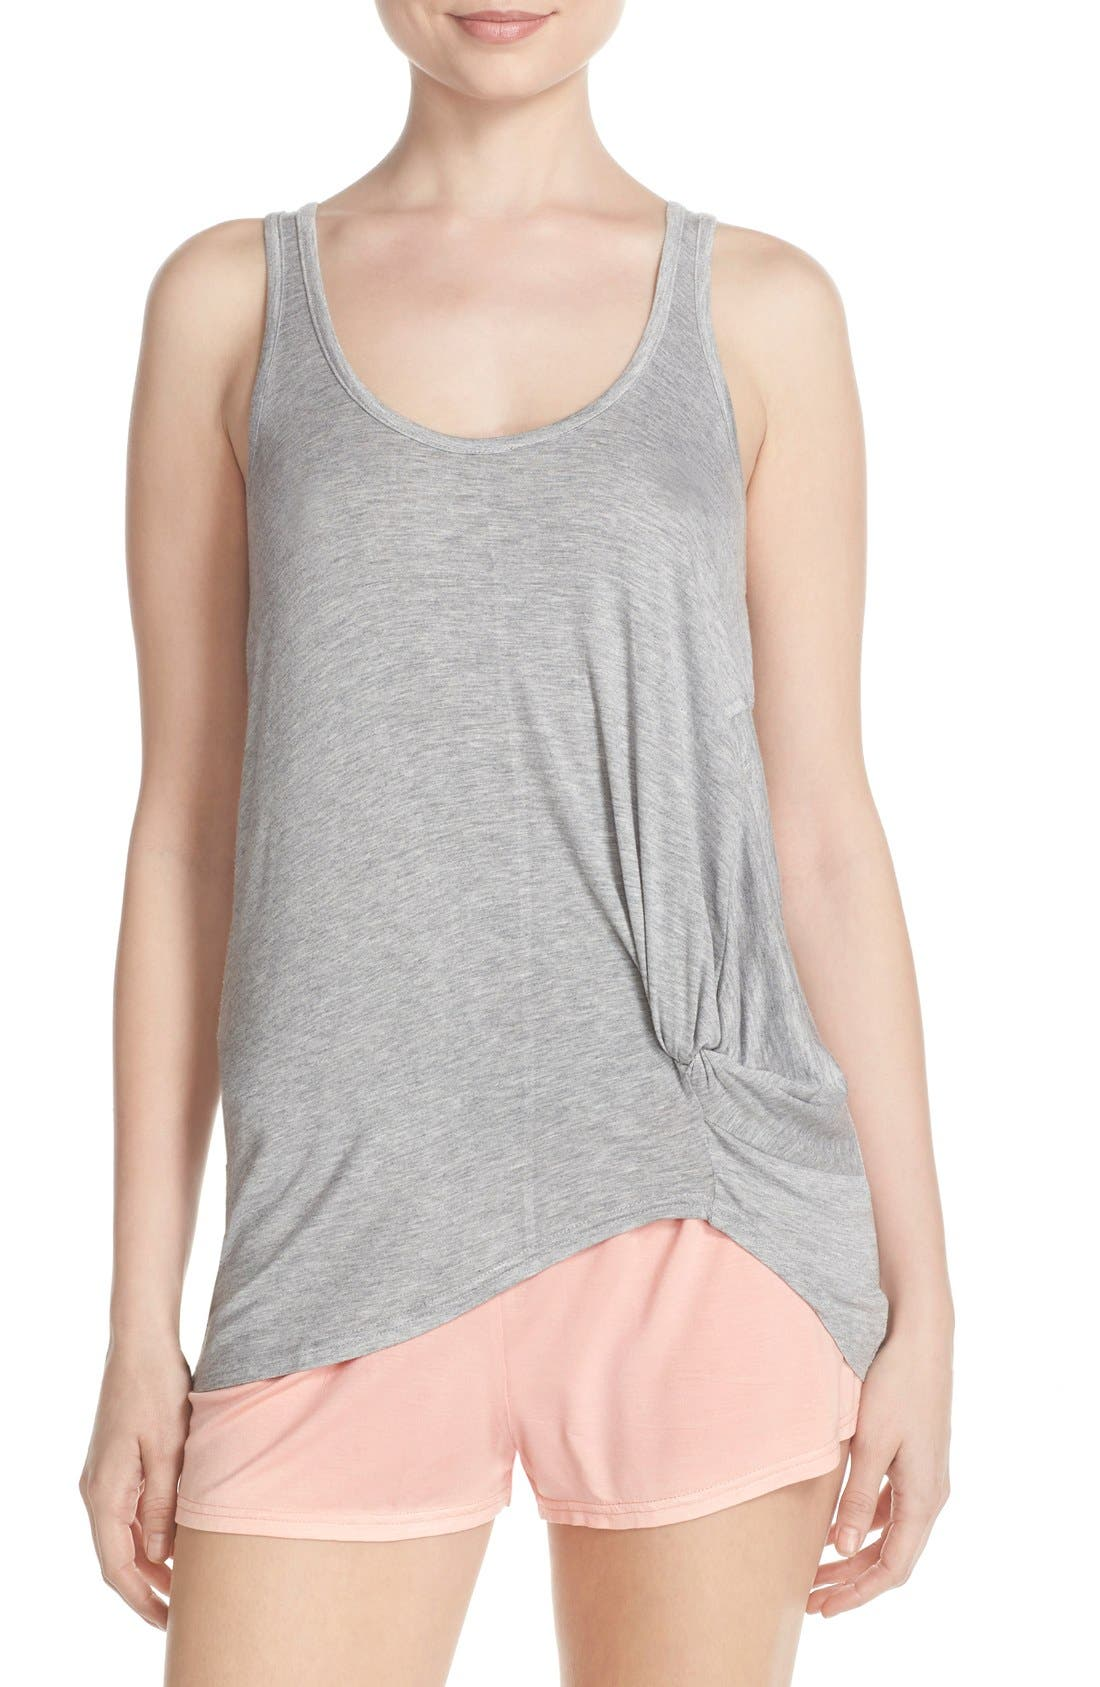 Knotted Tank & Pajama Shorts,                         Main,                         color, Light Grey/ Peach